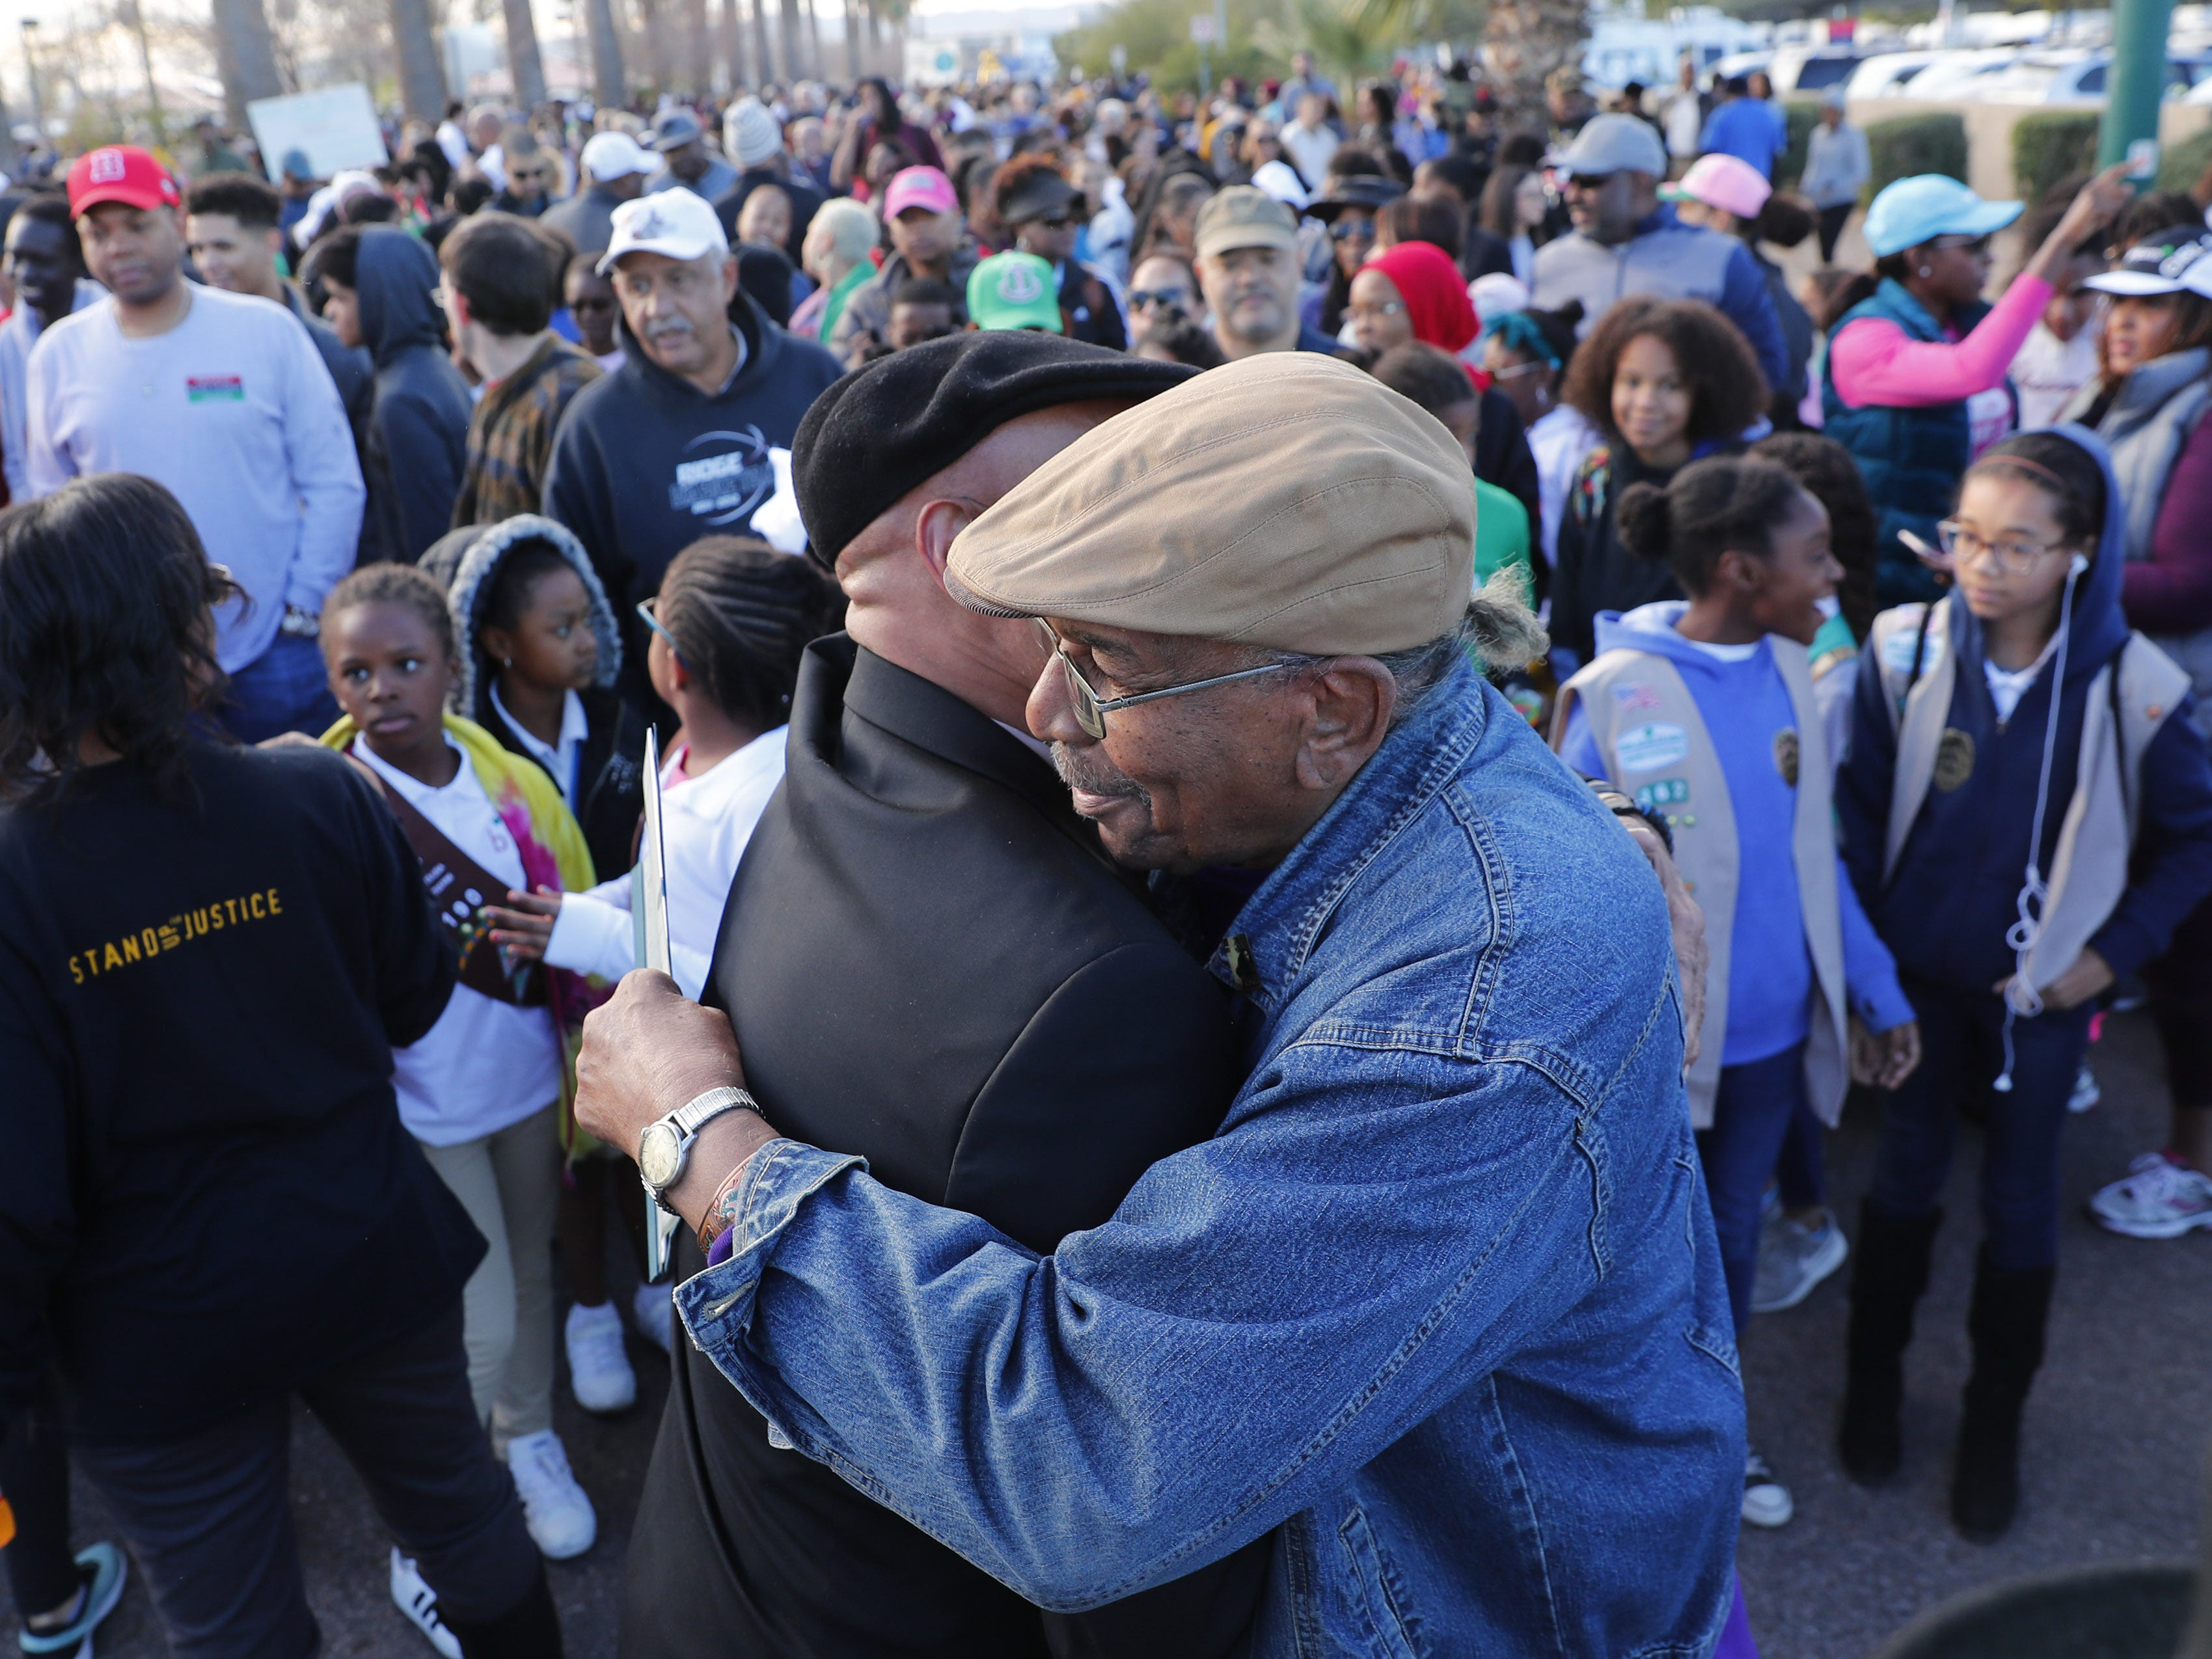 Rev. Gerald Richard II (left) greets Gene Blue before a march honoring Dr. Martin Luther King in downtown Phoenix, Ariz. January 21, 2019. The march is symbolic of Dr. King's revolutionary 1968 march.